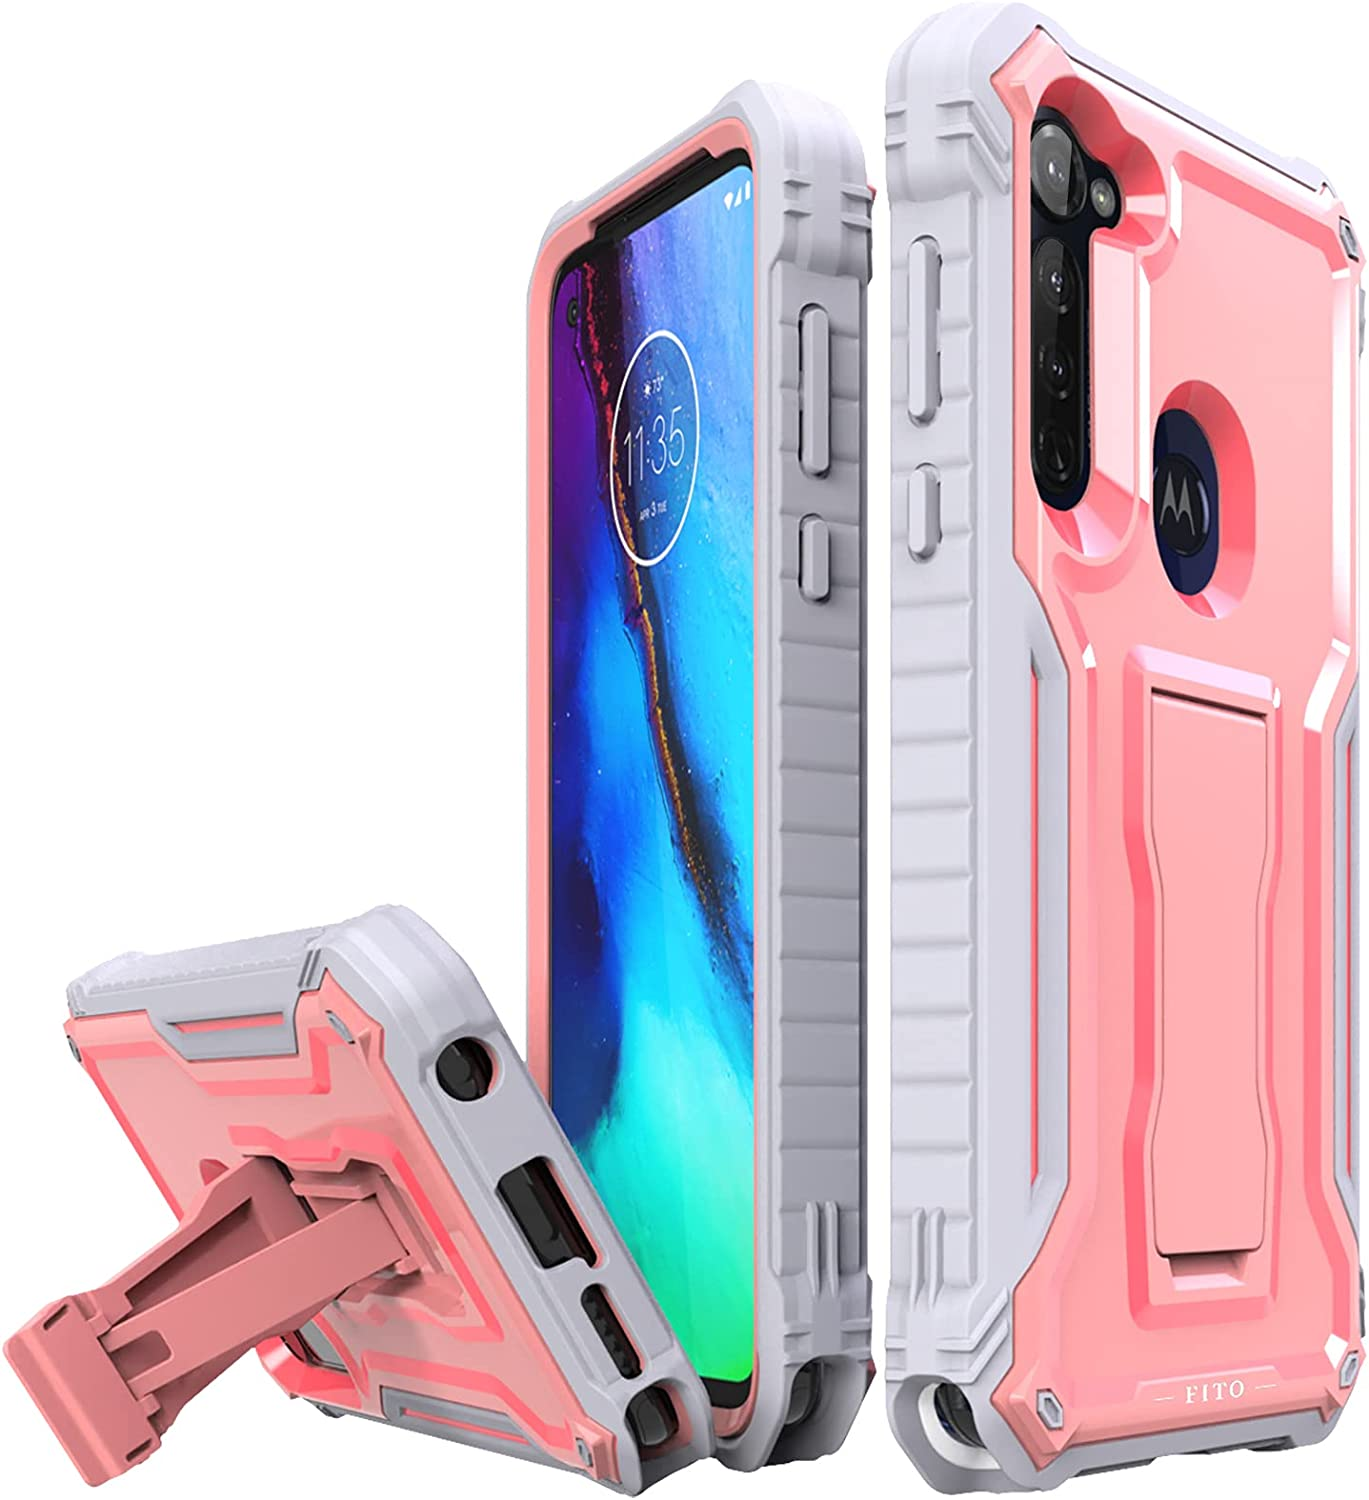 FITO for Moto G Stylus Case, Dual Layer Shockproof Heavy Duty Case for Moto G Stylus Phone Built-in Kickstand (Pink)